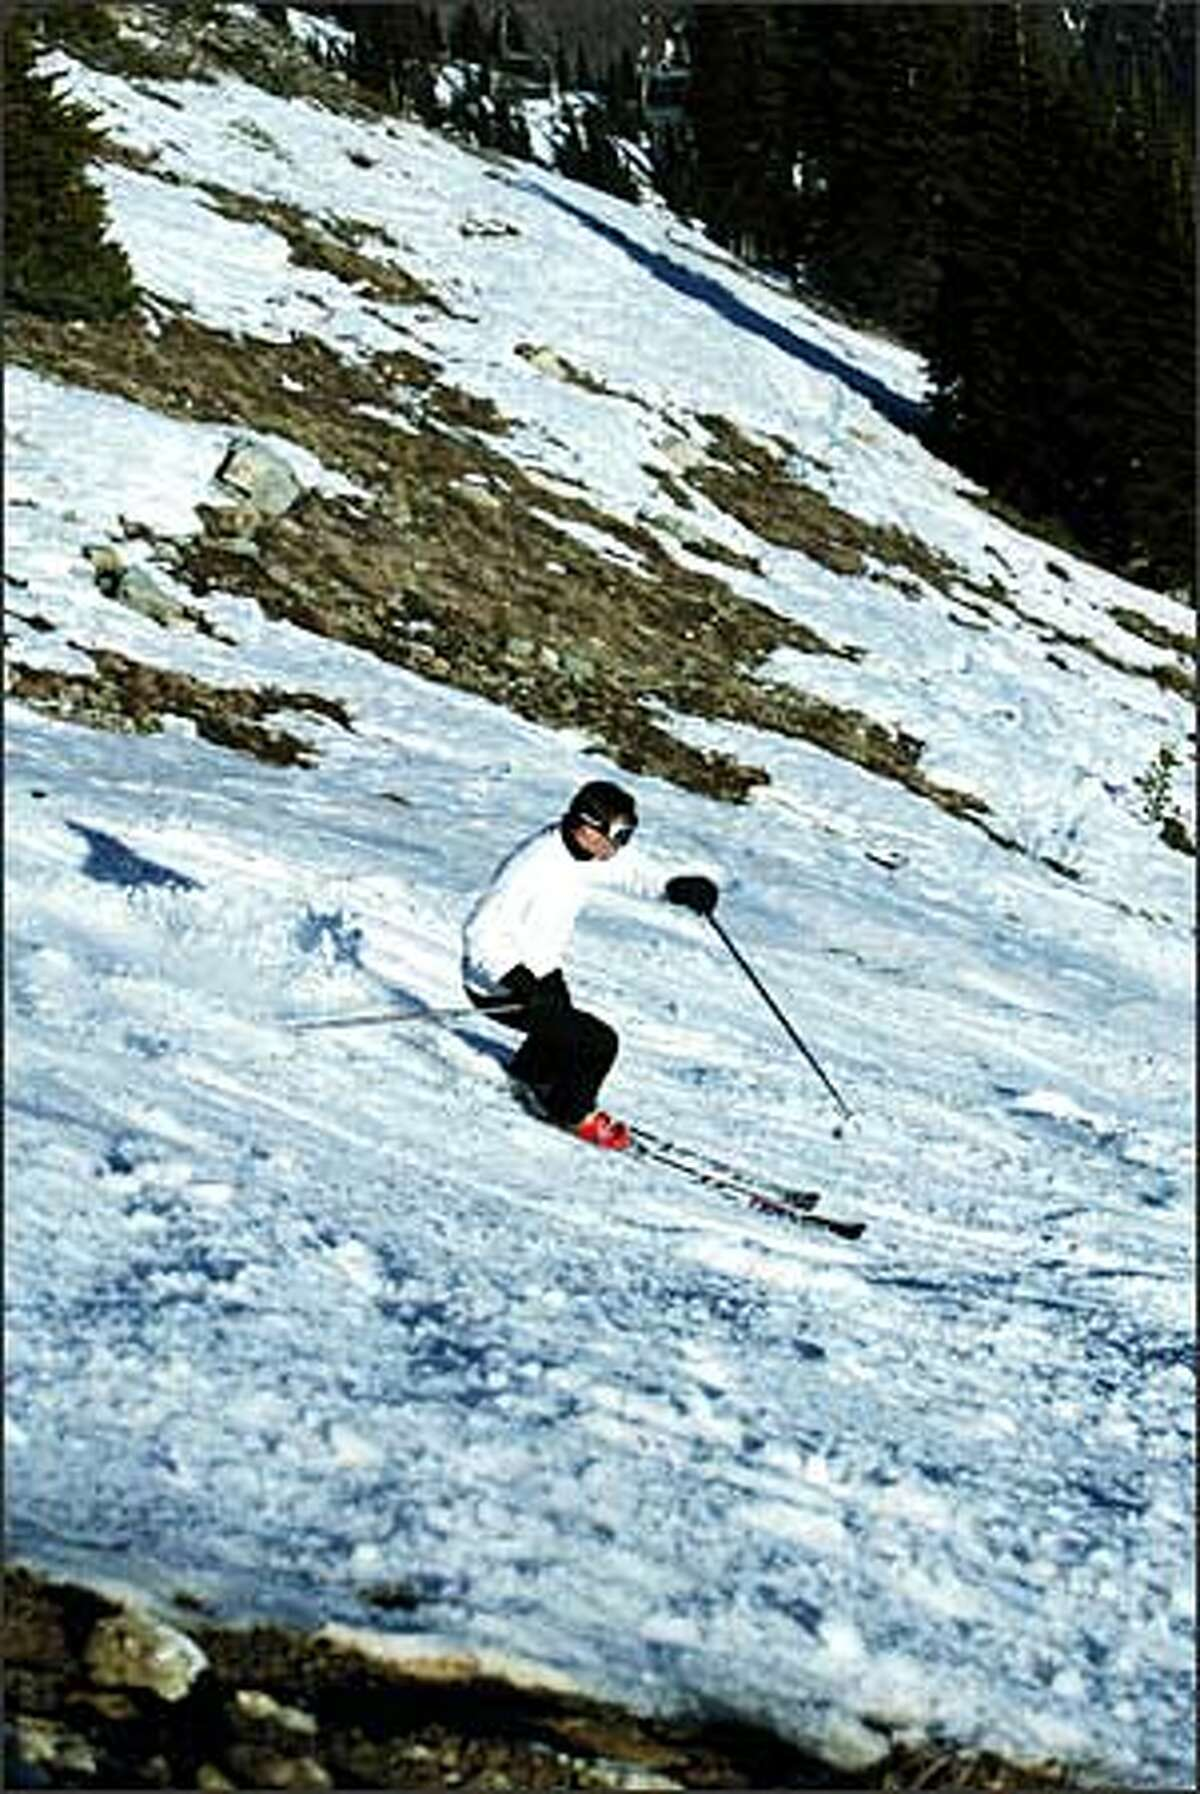 Karel Sir dodges rocks to take advantage of the only ski run in the region that's open daily: Crystal Mountain's Green Valley.